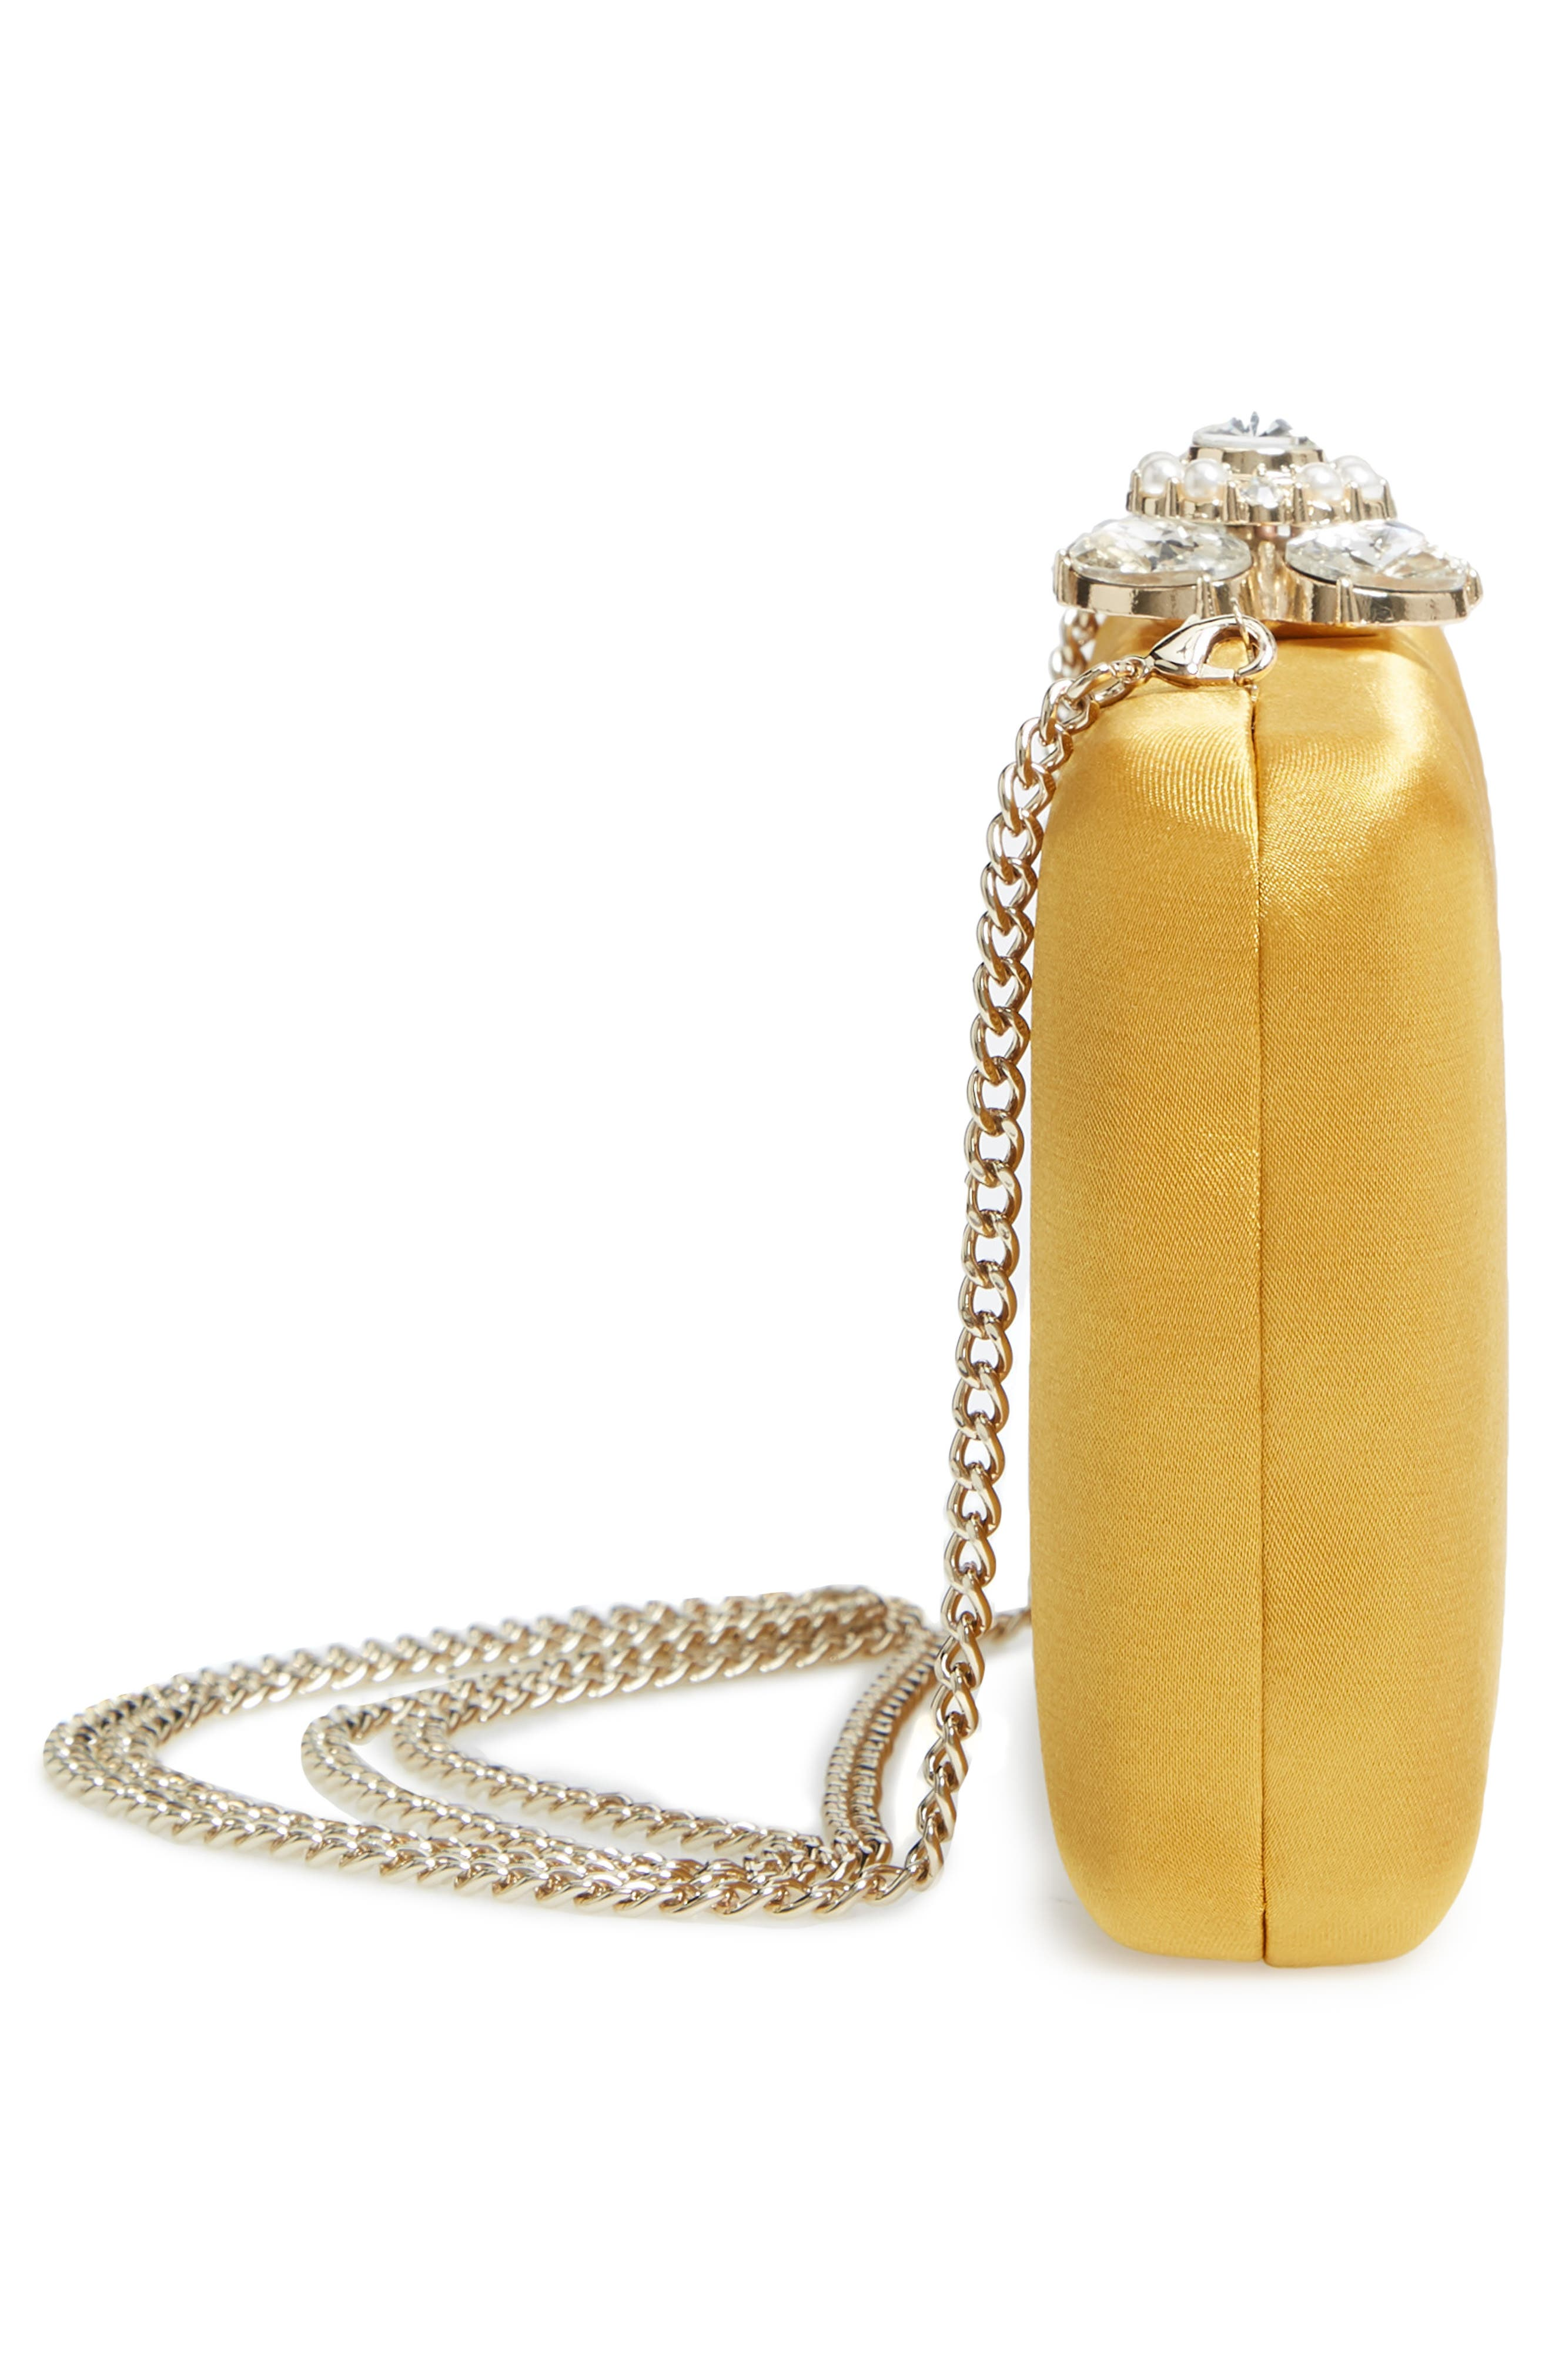 Crystal Imitation Pearl Clasp Box Clutch,                             Alternate thumbnail 5, color,                             YELLOW GOLD